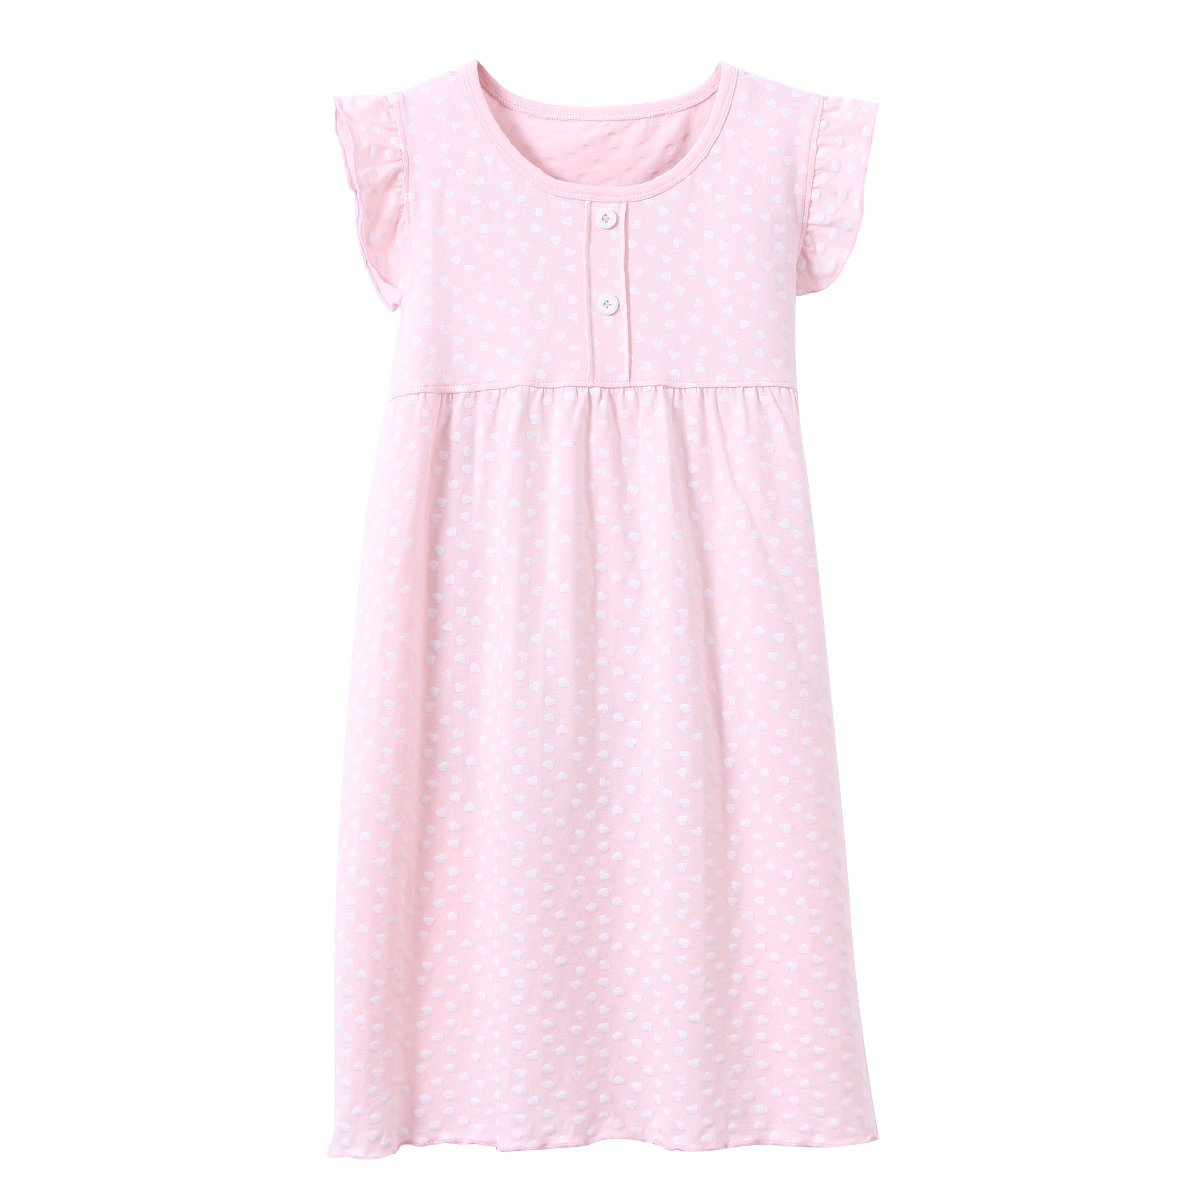 DGAGA Little Girls Princess Nightgown Cotton Lace Bowknot Sleepwear Nightdress (5-6 Years/120cm, Pink) by DGAGA (Image #1)